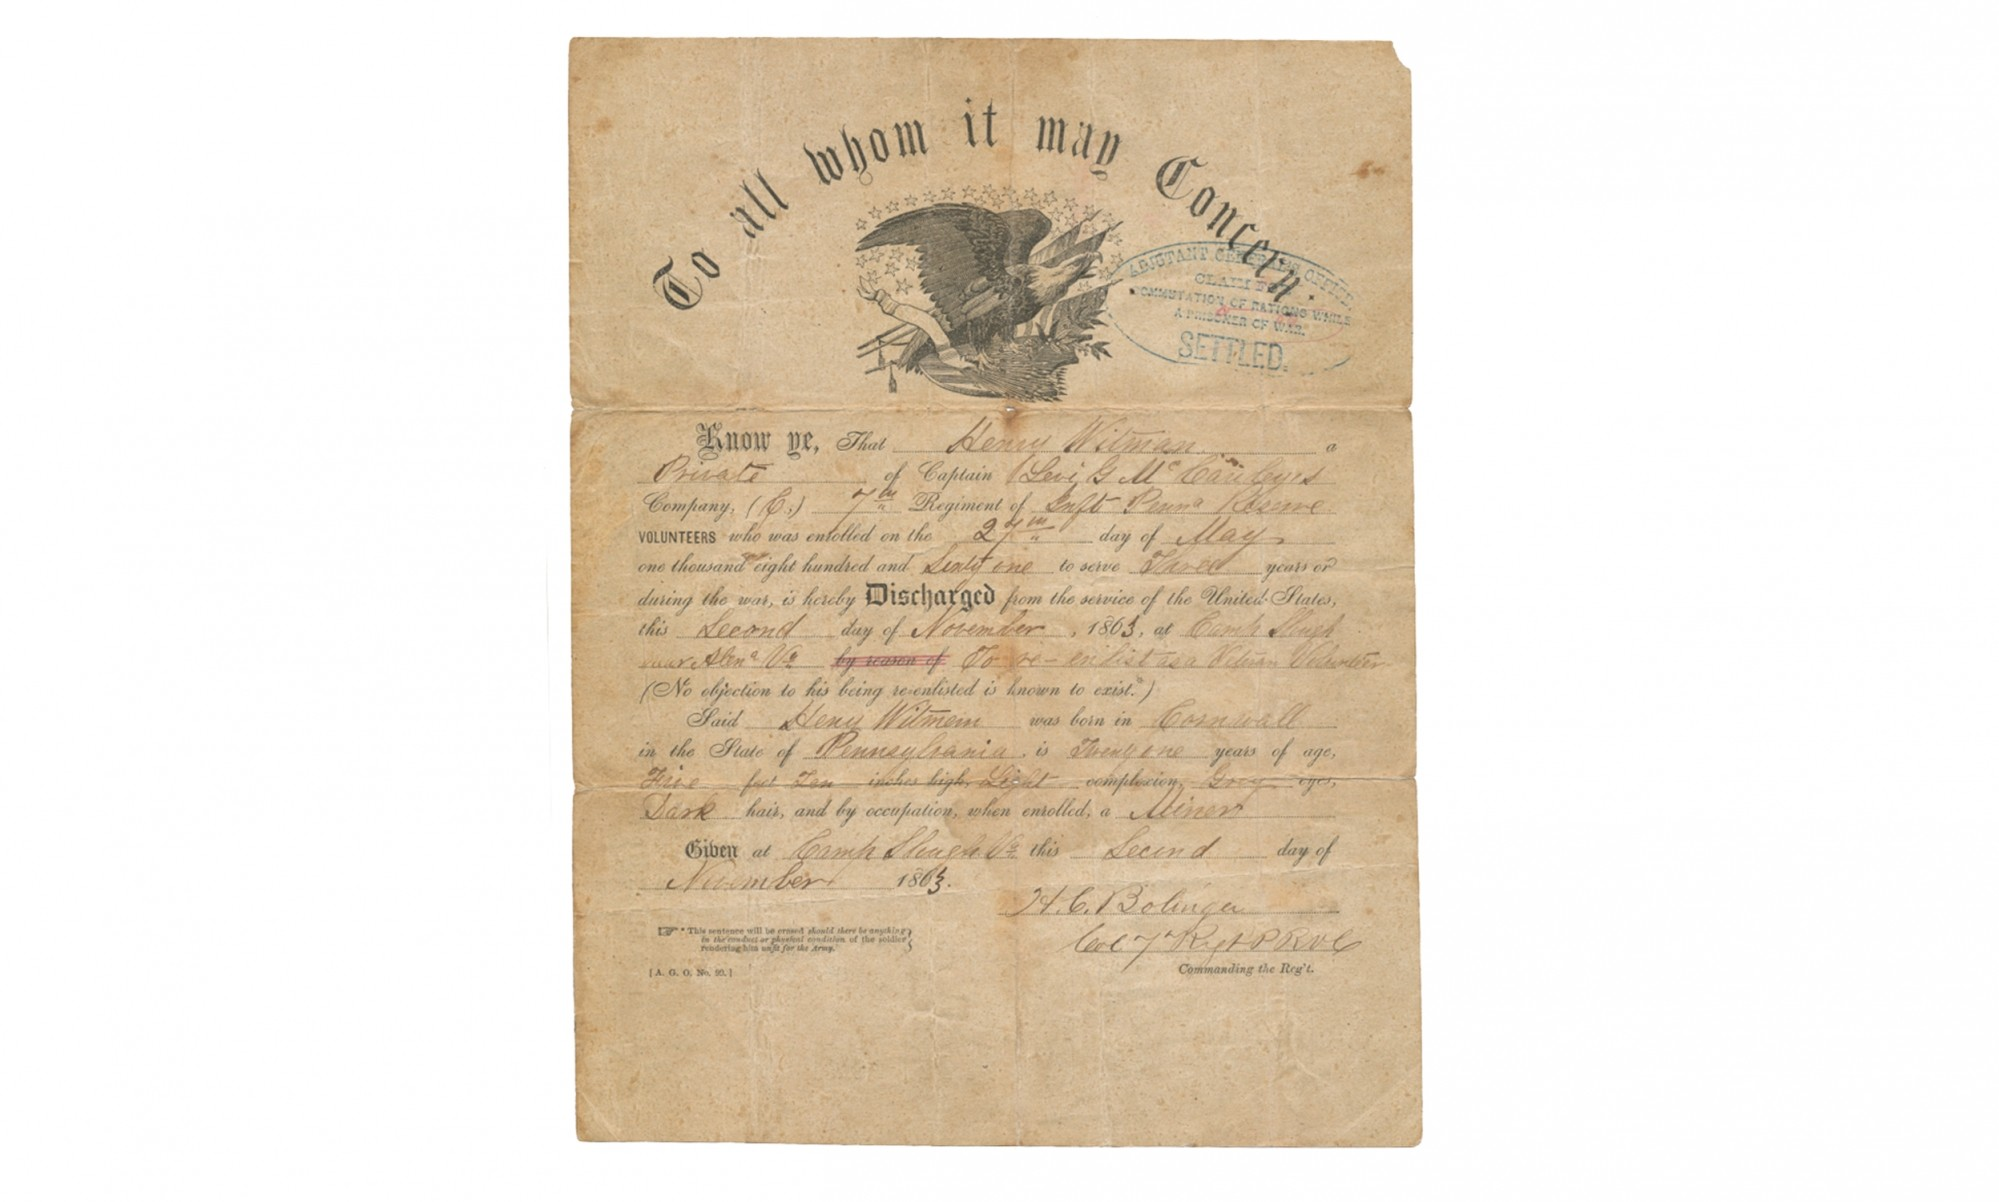 EAGLE MASTHEAD DISCHARGE FOR 7TH PENNSYLVANIA RESERVES SOLDIER